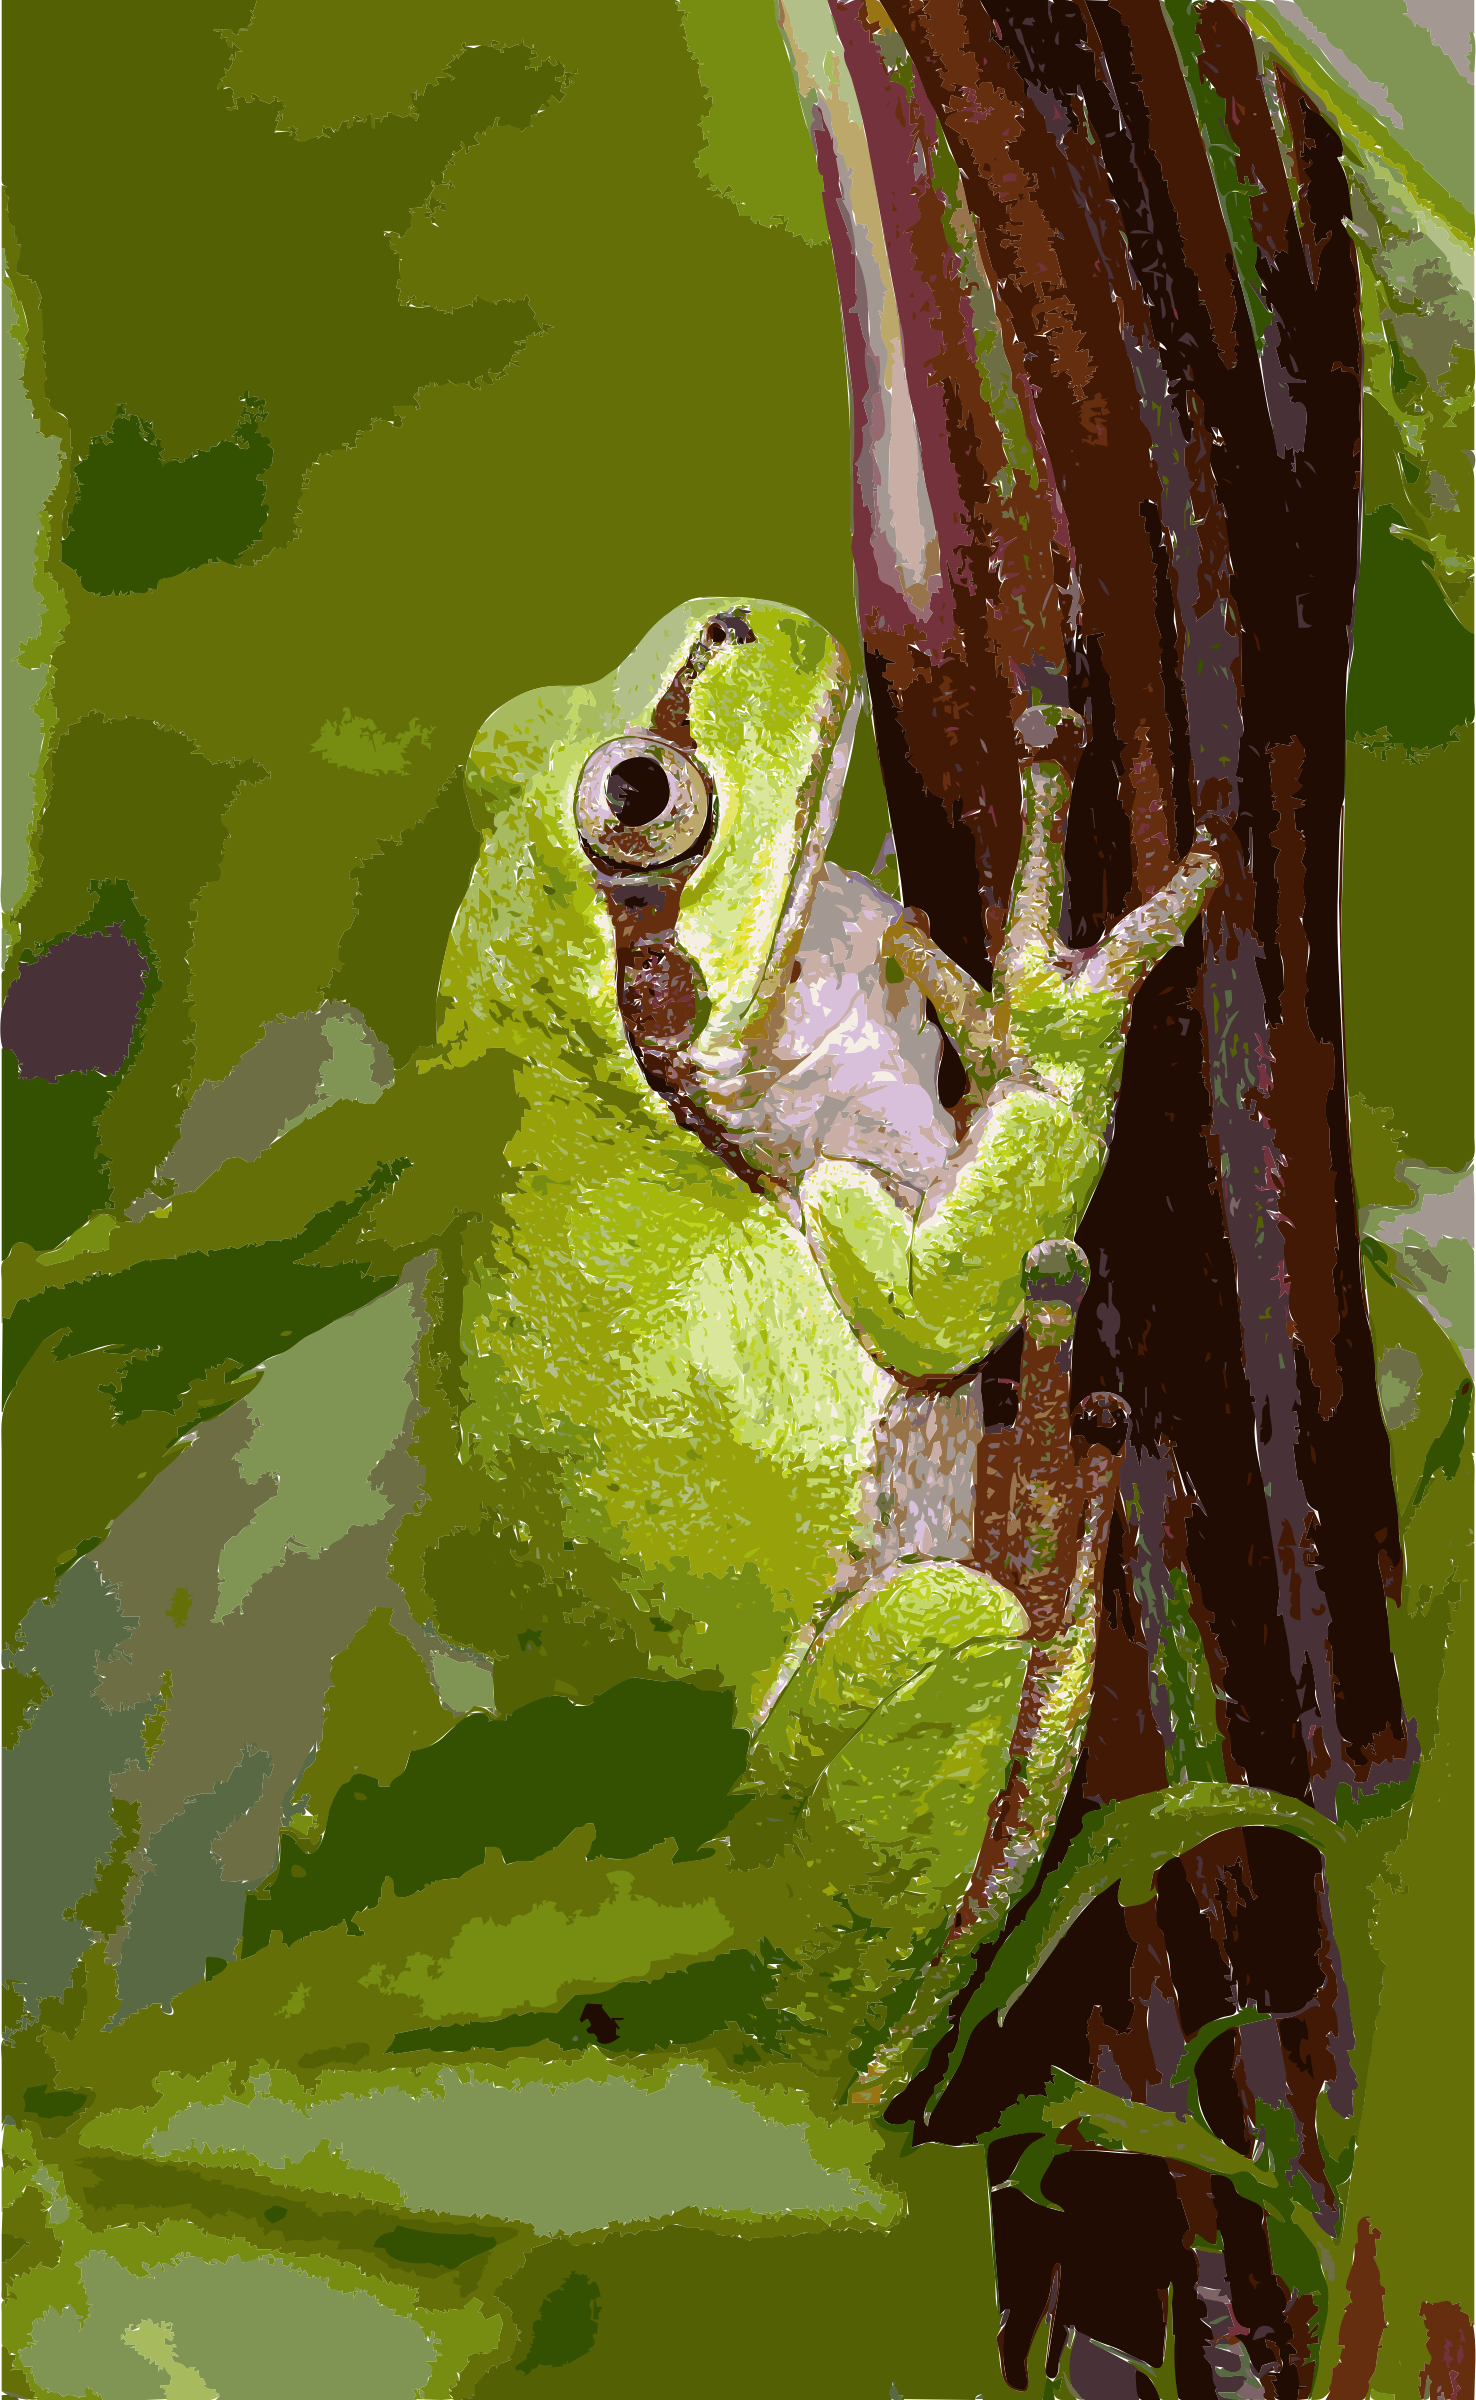 Tree frog2 by 5me7p4+duxtvkgxmihwc